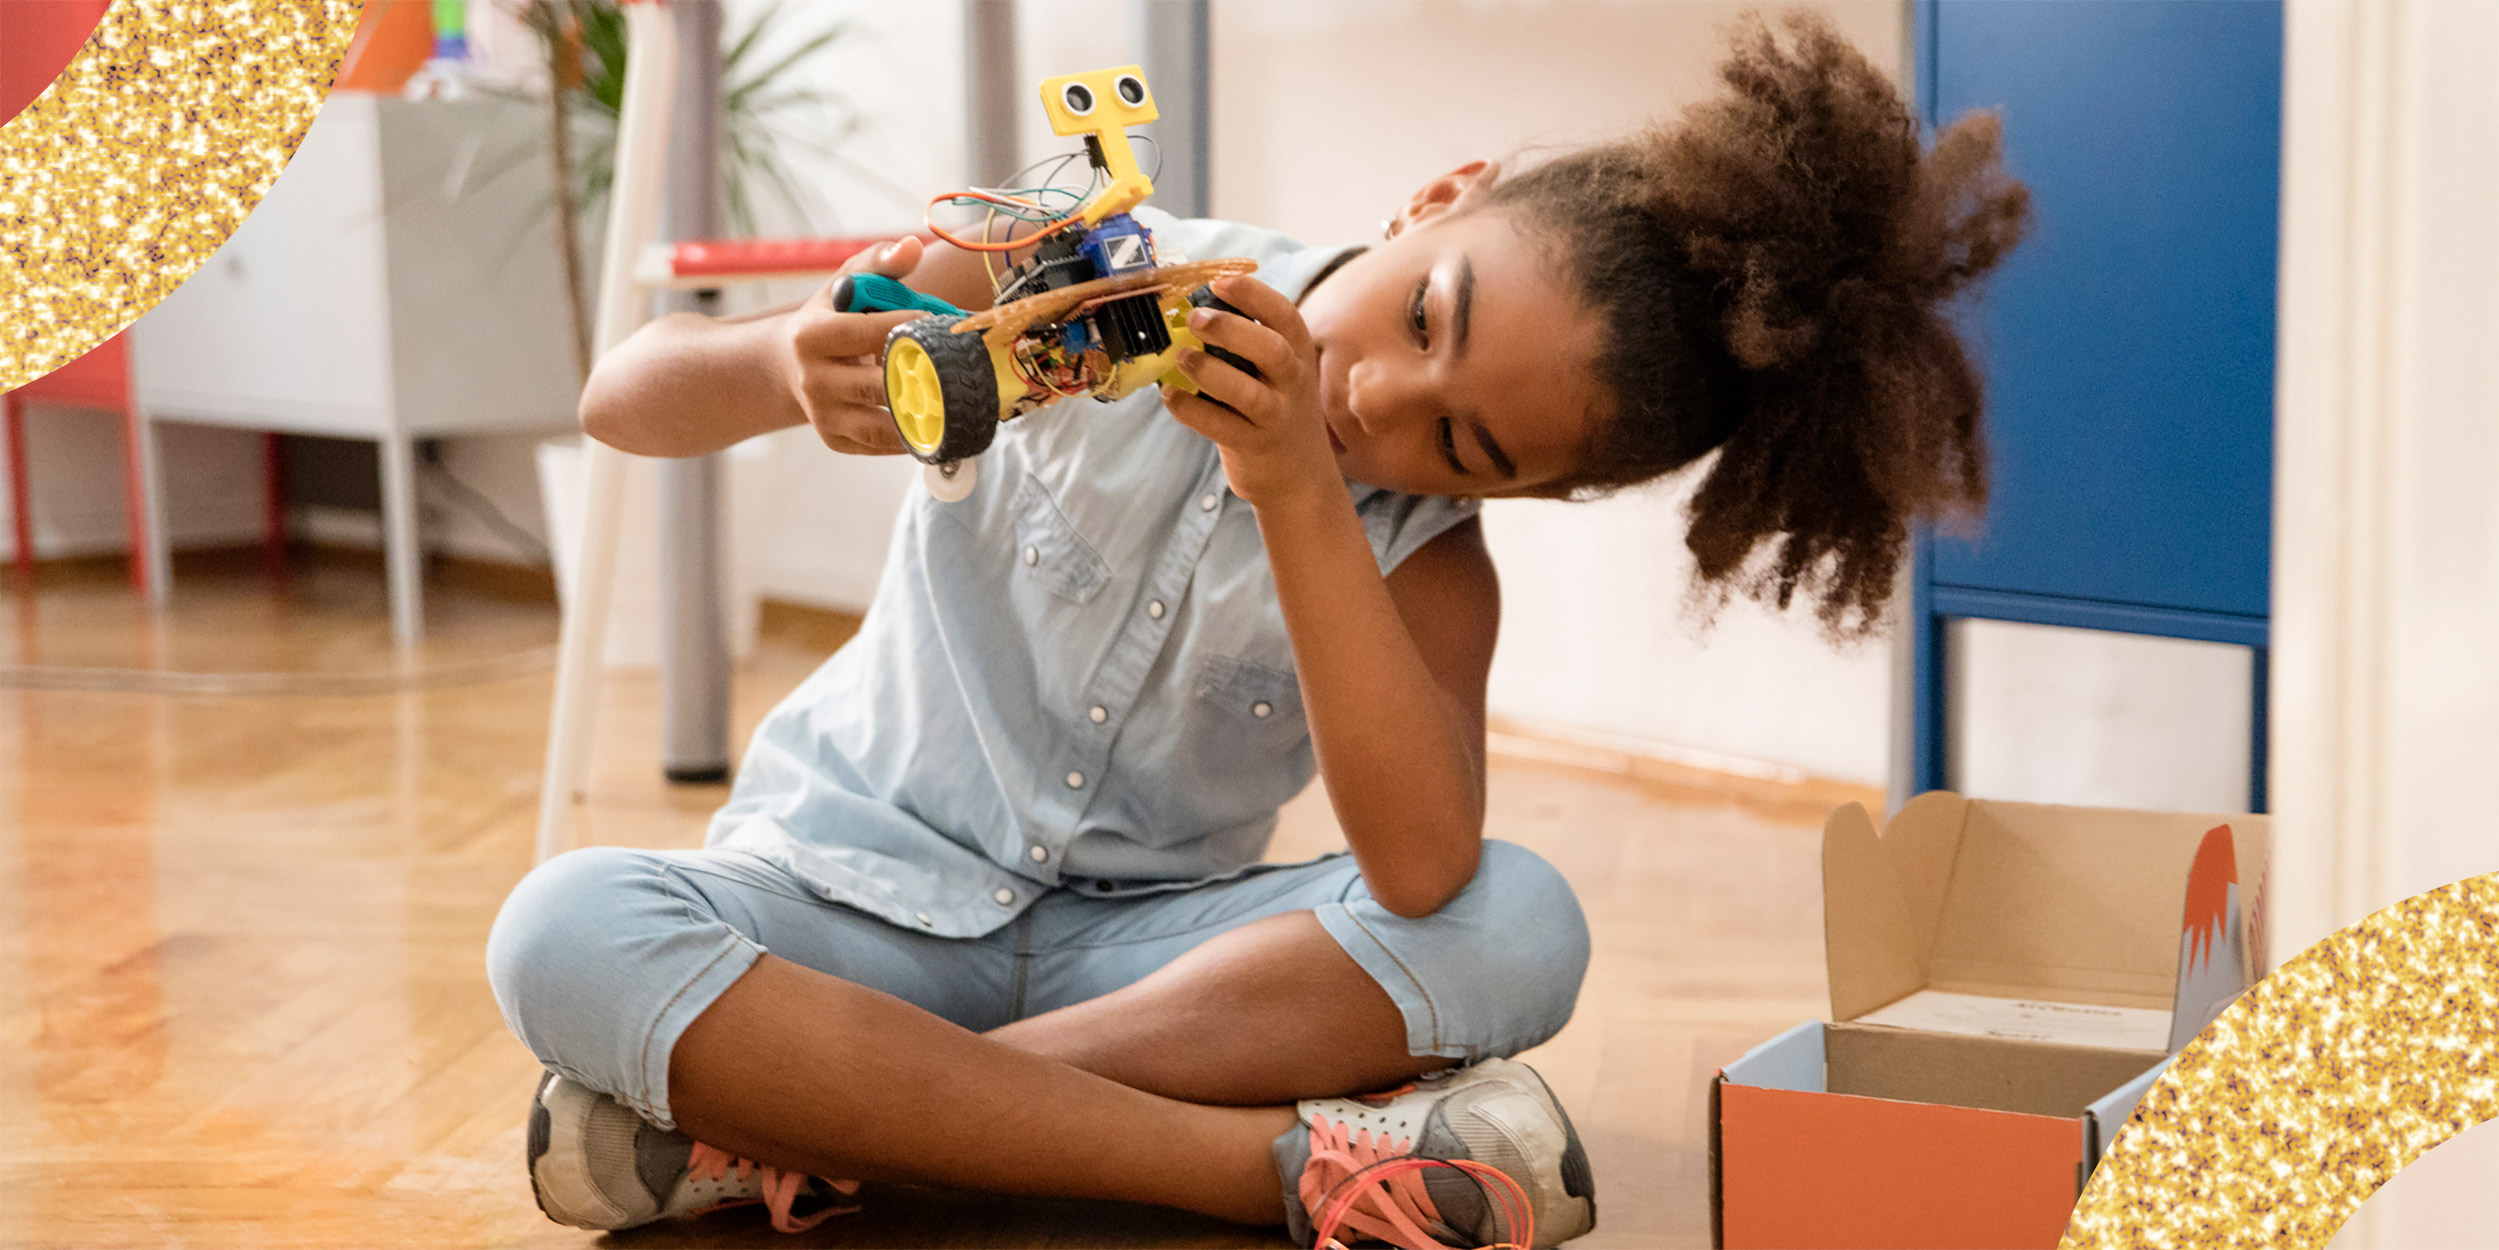 21 Best Stem Toys For Kids In 2020 Perfect To Gift